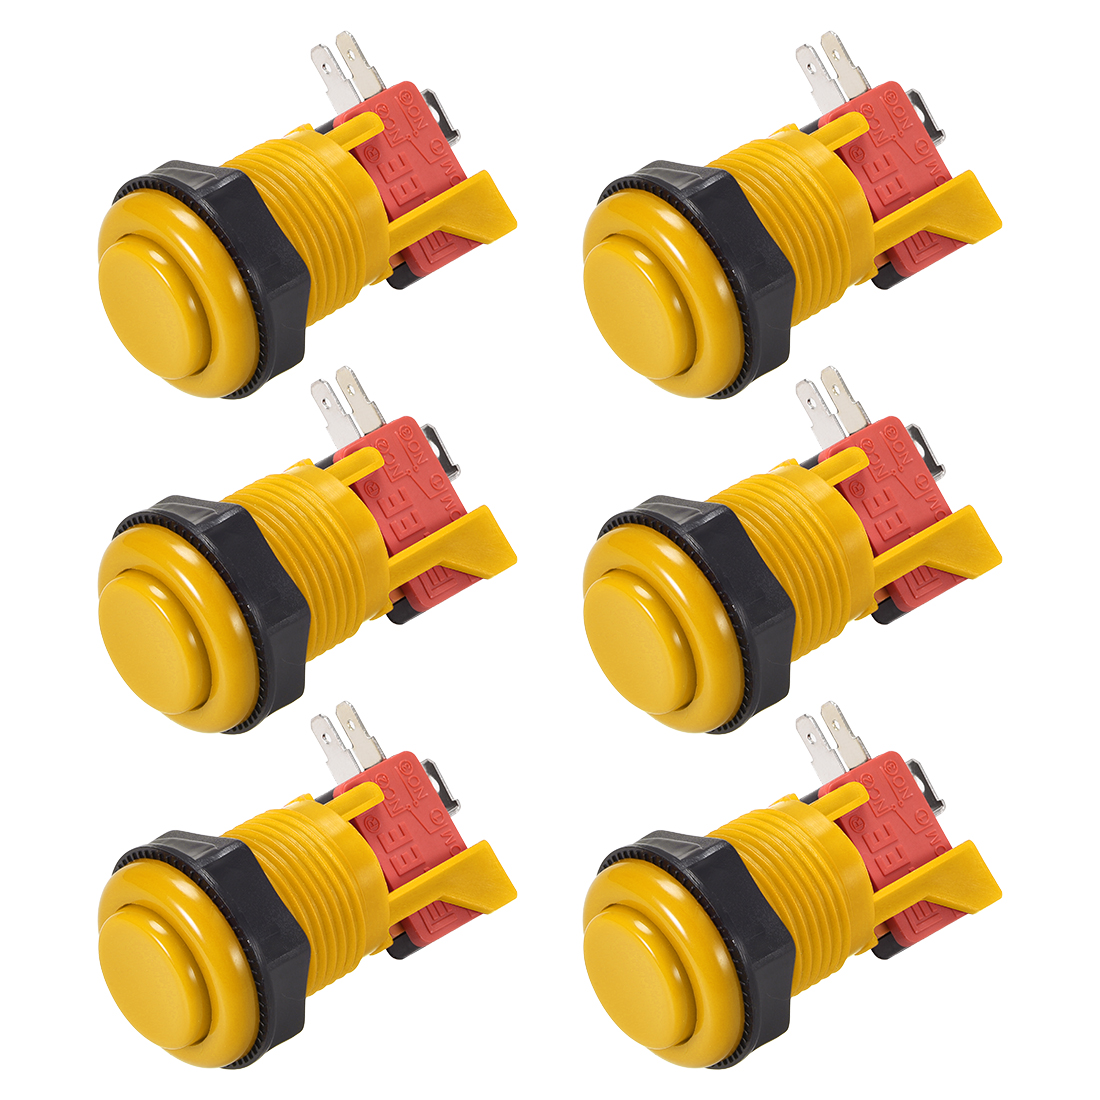 27mm Mounting Momentary Game Push Button Switch with Micro switch Yellow 6pcs